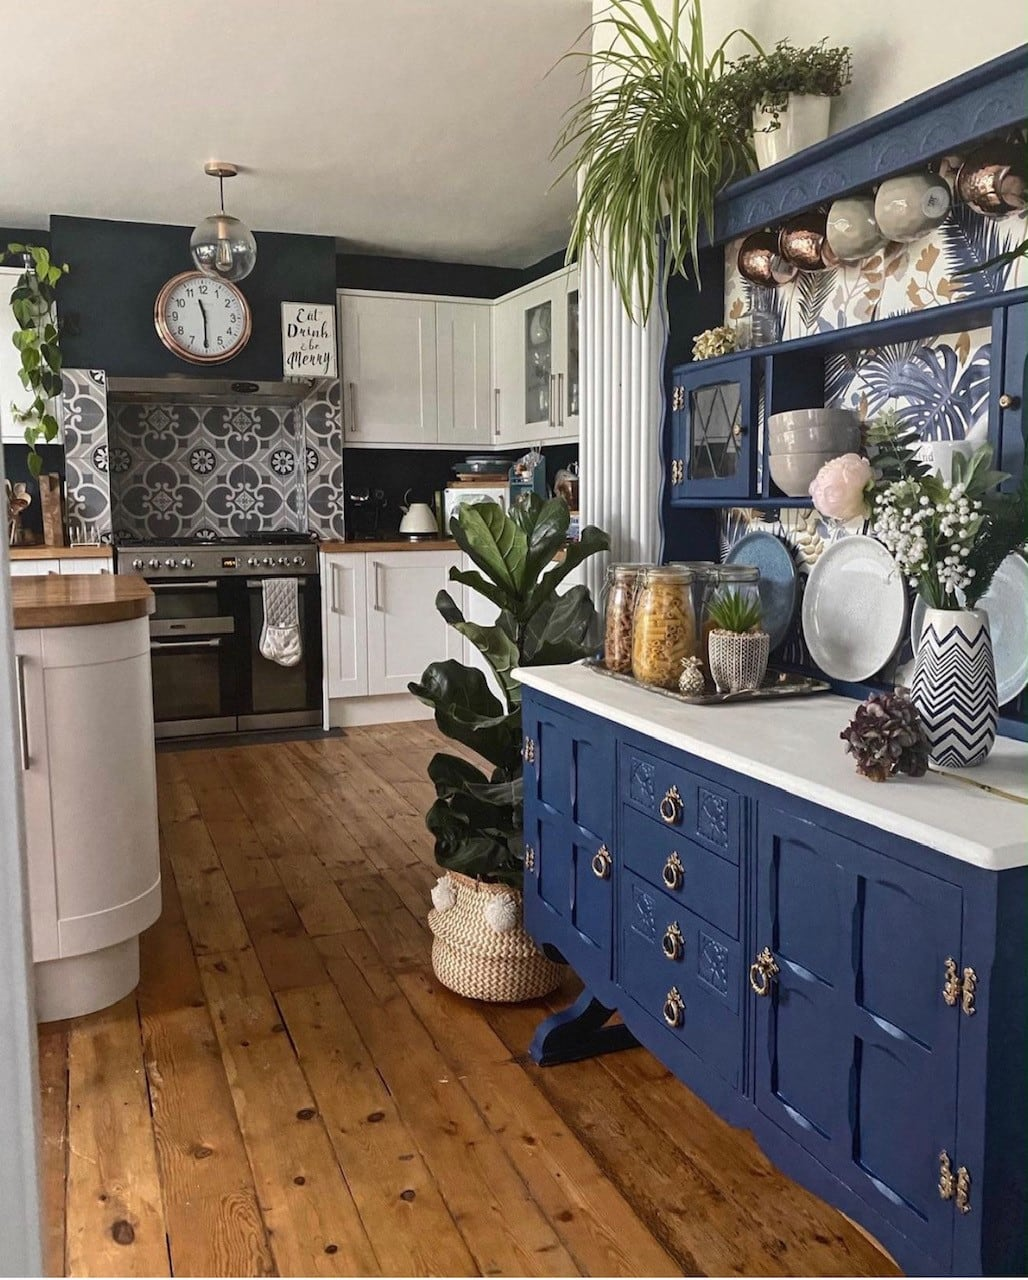 upcycled welsh dresser painted in dulux sapphire salute in the kitchen with howdens units and wooden floorboards